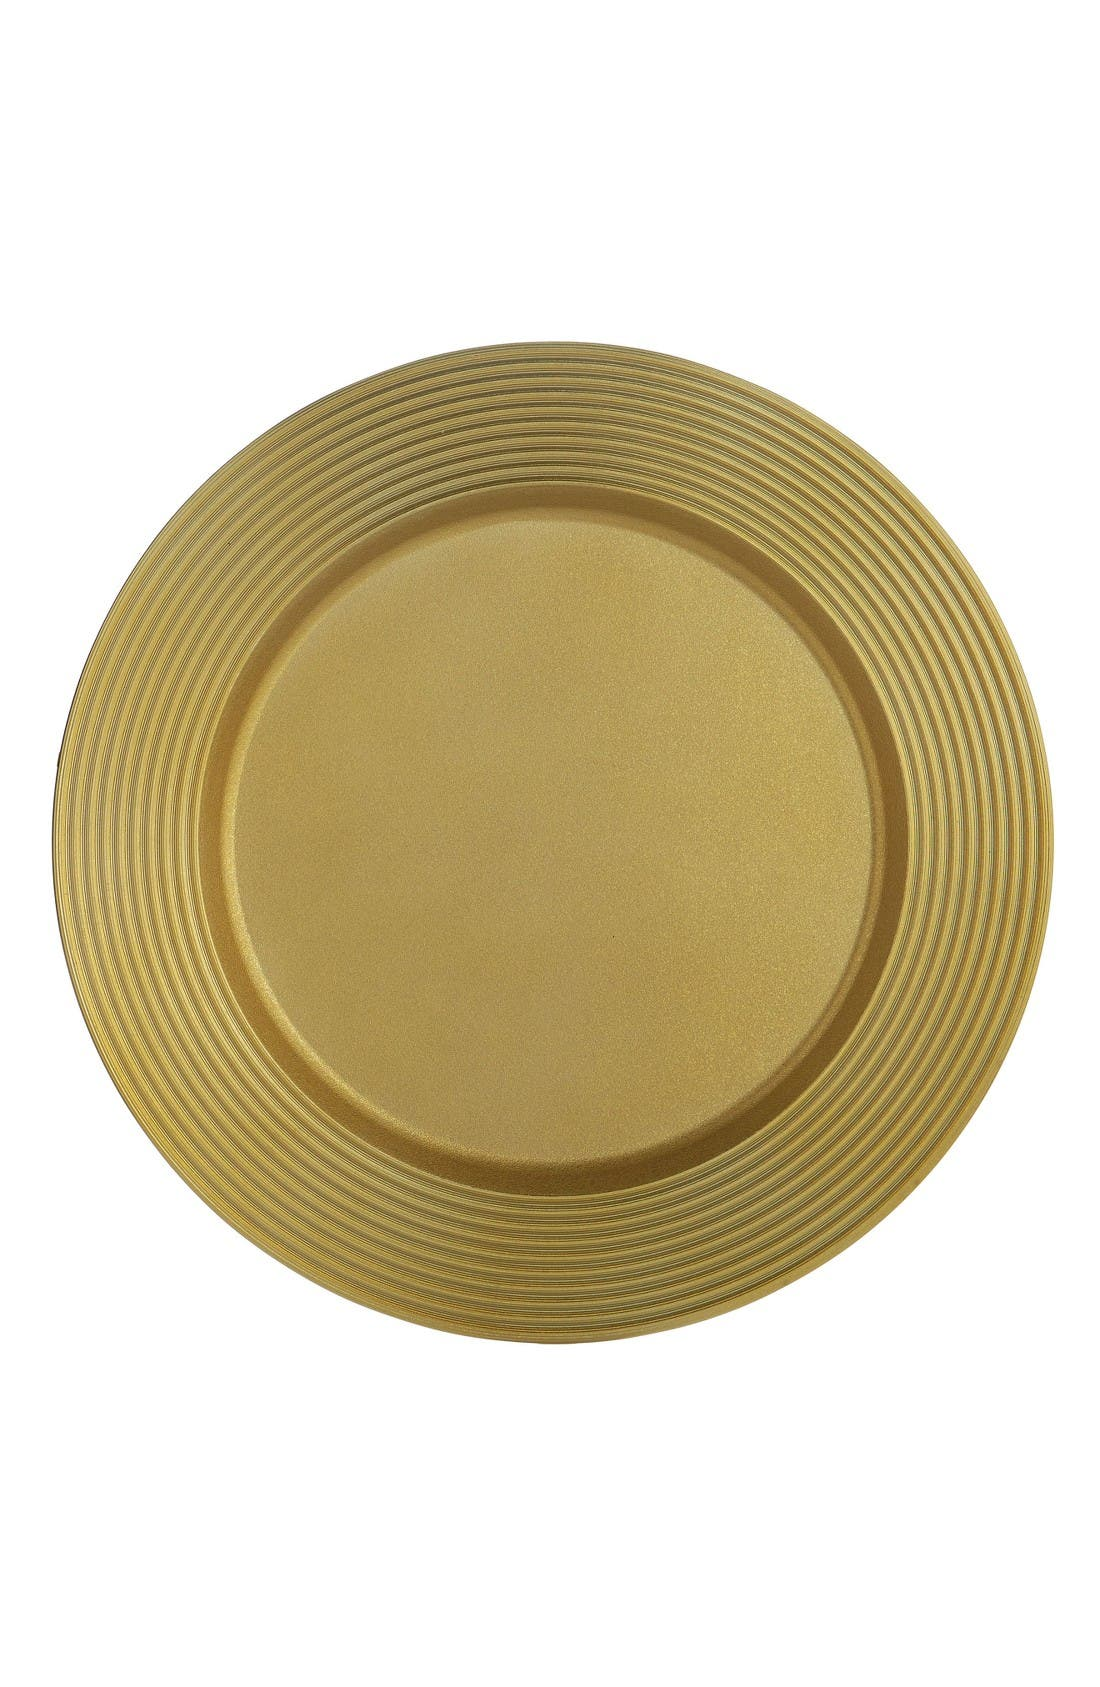 Main Image - Michael Aram Wheat Charger Plate